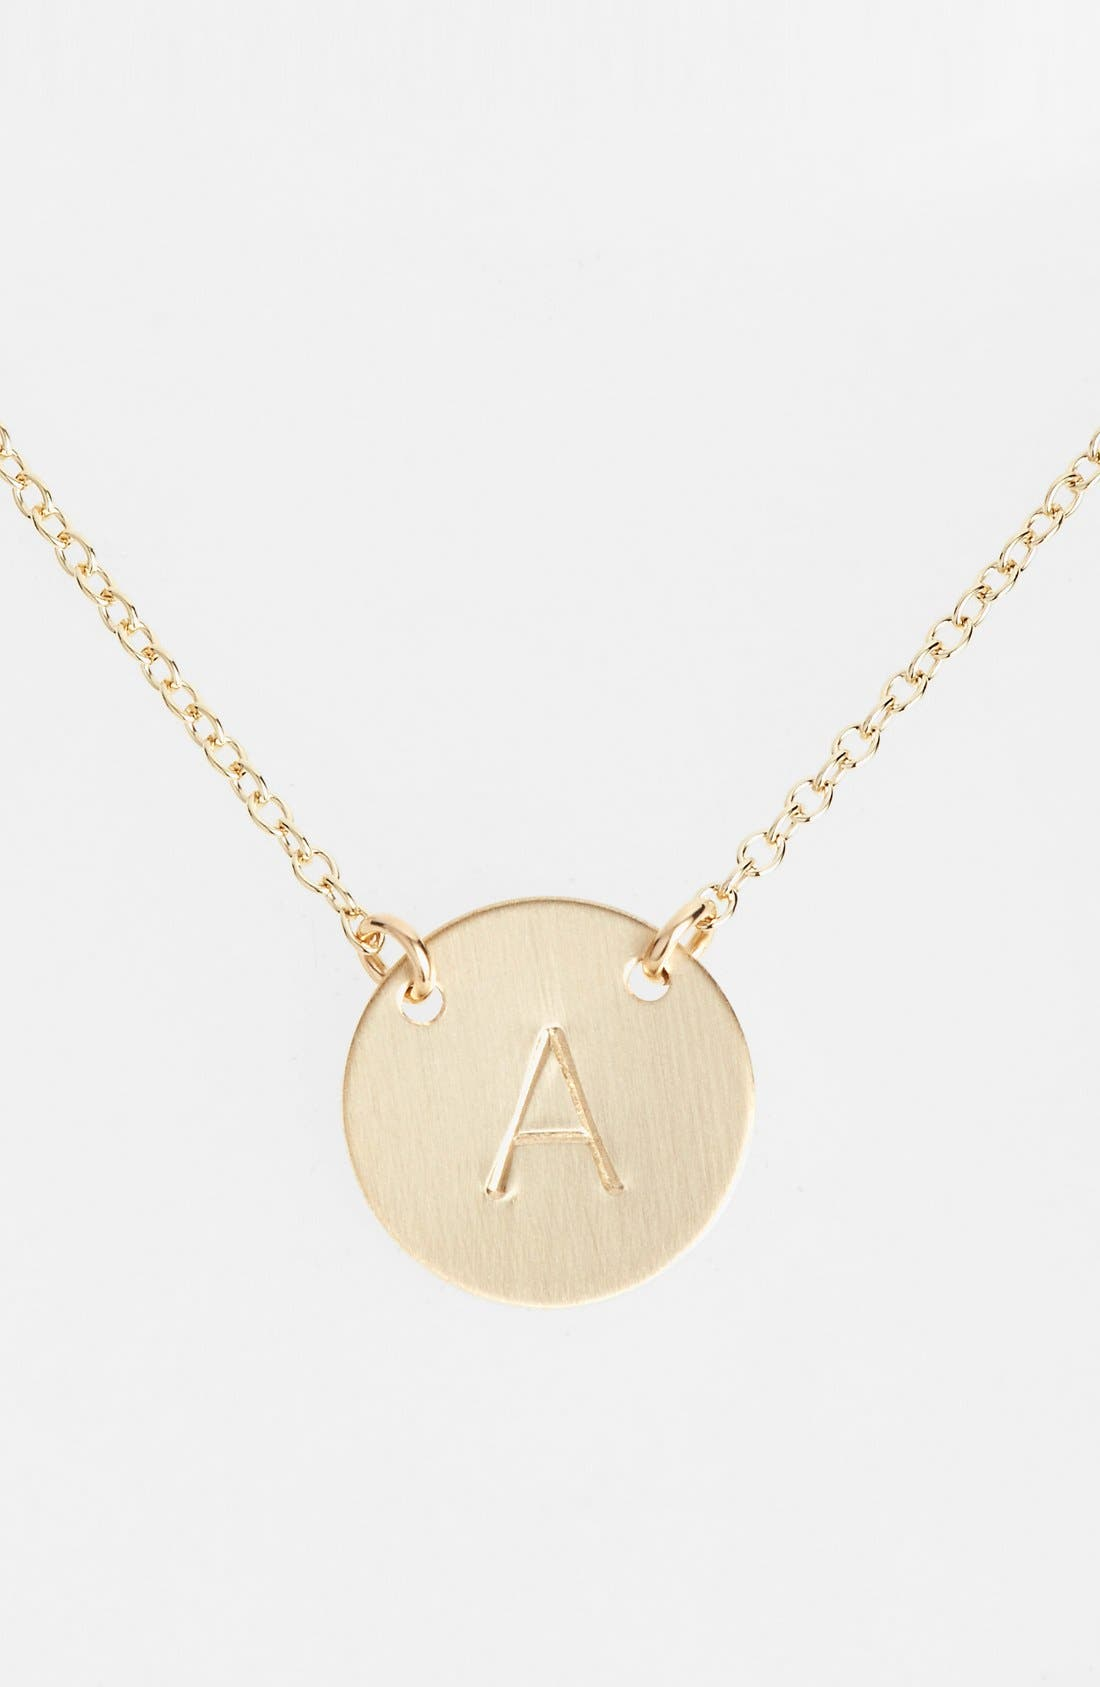 Alternate Image 1 Selected - Nashelle 14k-Gold Fill Anchored Initial Disc Necklace